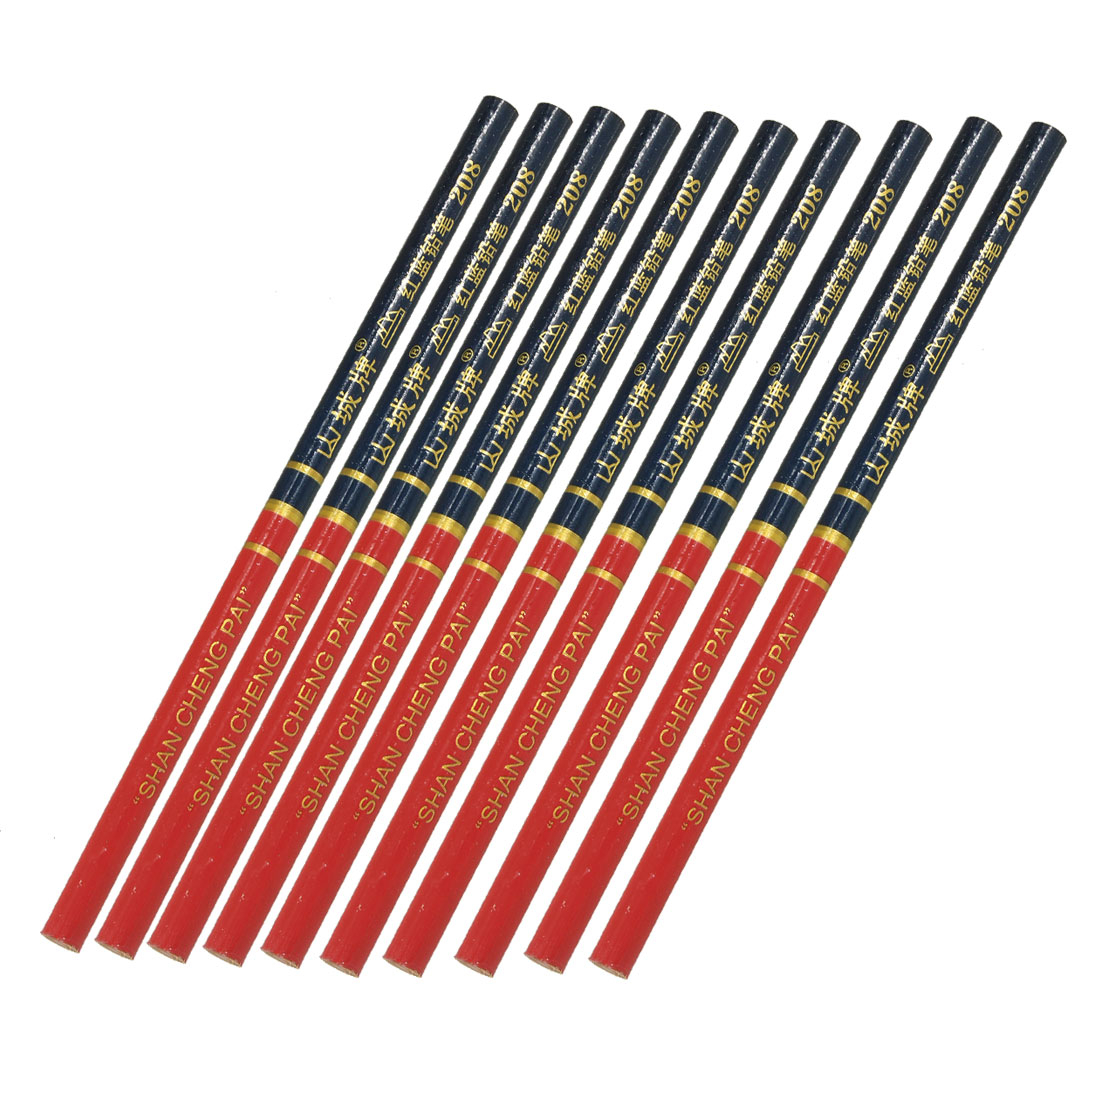 "10 Pcs Red Blue Lead Graphite 6.9"" Long Pencil for Carpenter"